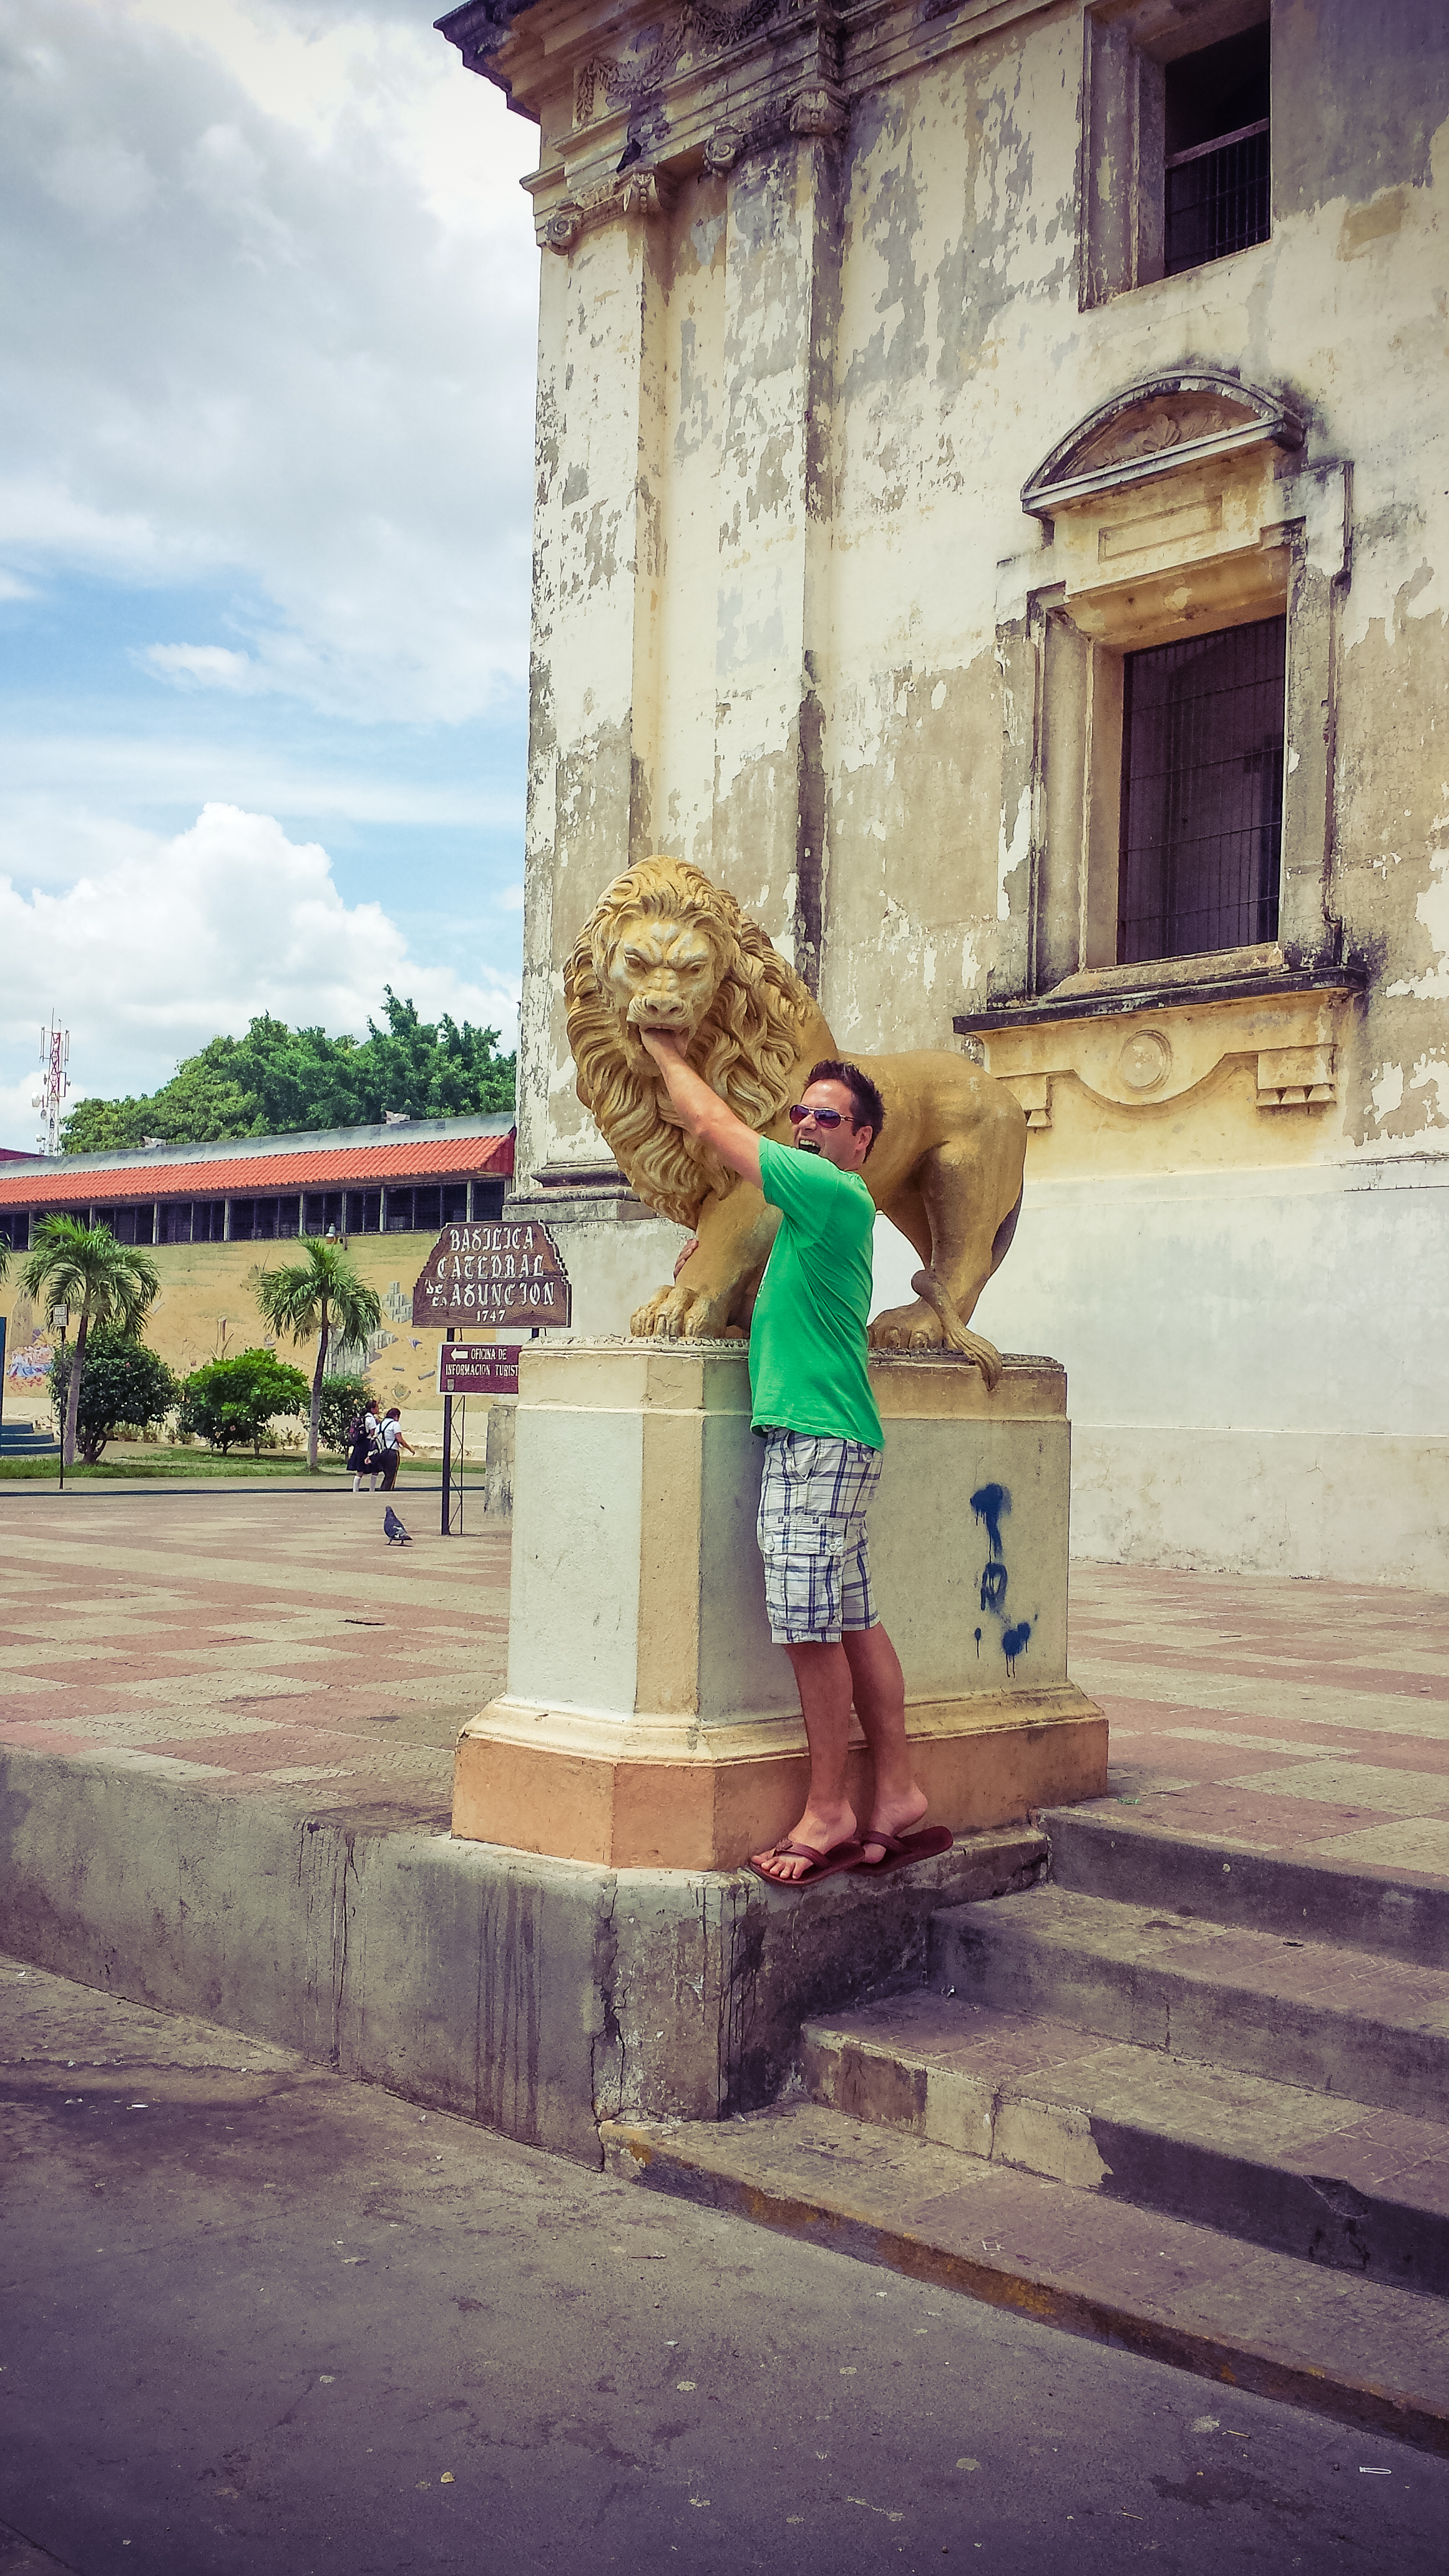 Lions outside of the cathedral